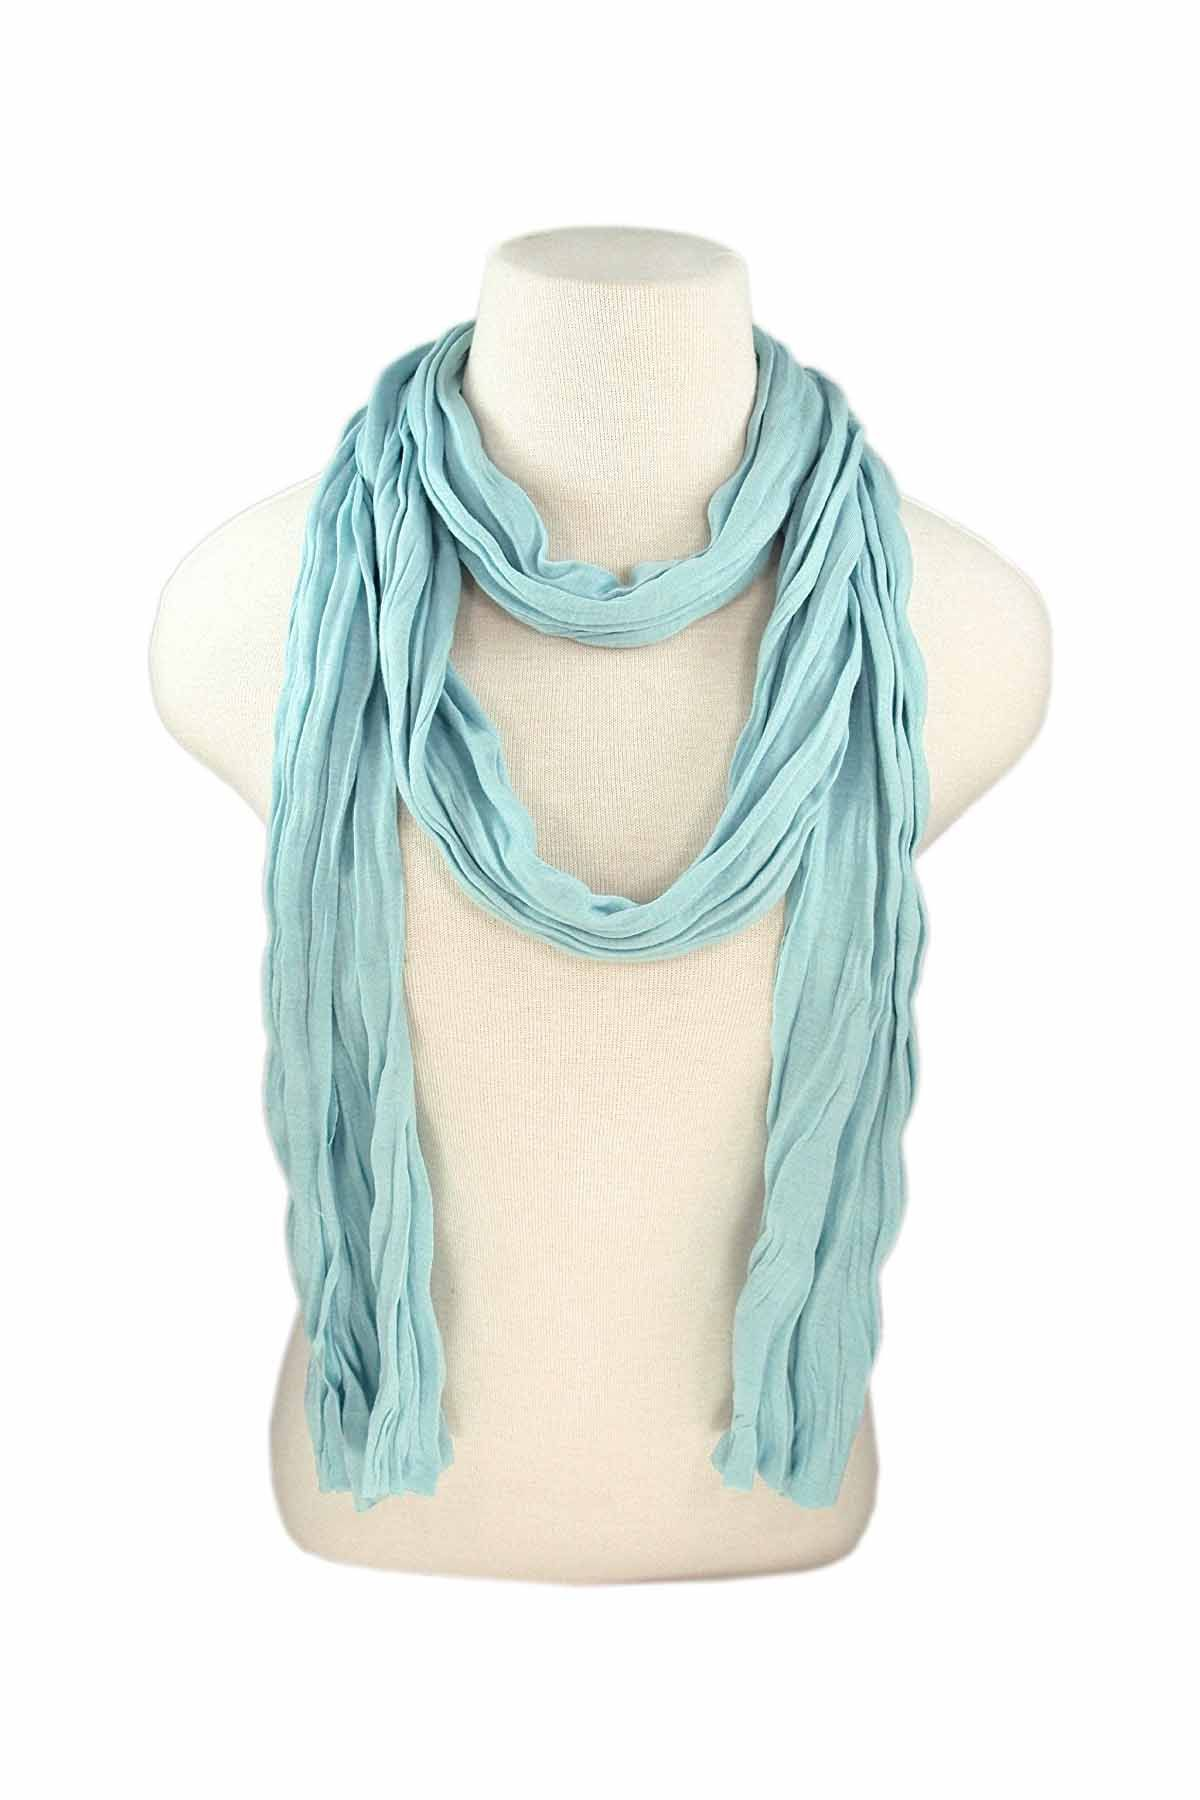 10 Gorgeous Scarves for Spring